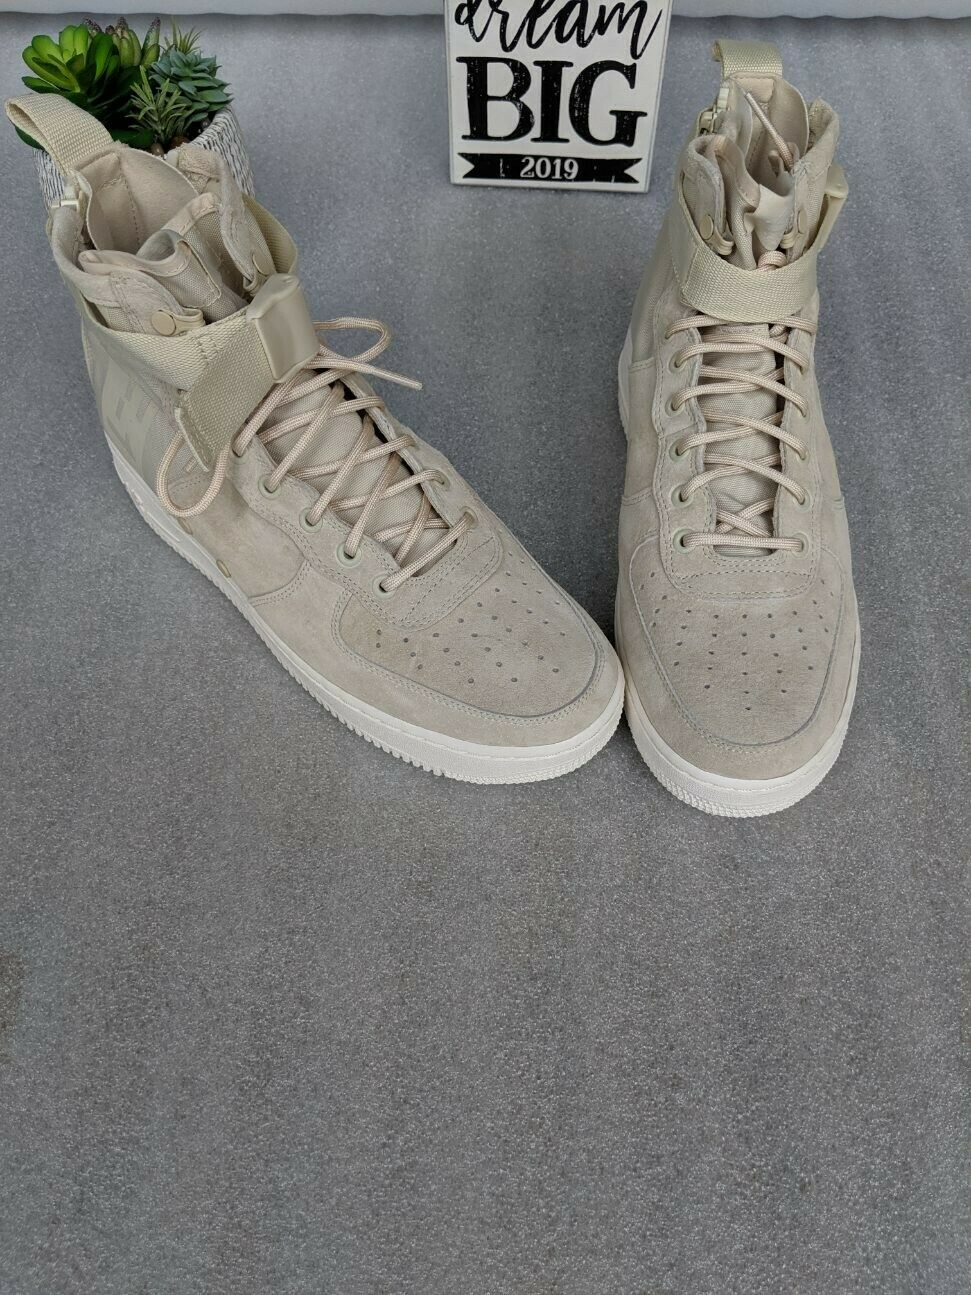 Air Force 1 Mid Fossil Beige  New Dimensione 11.5  n ° 1 online